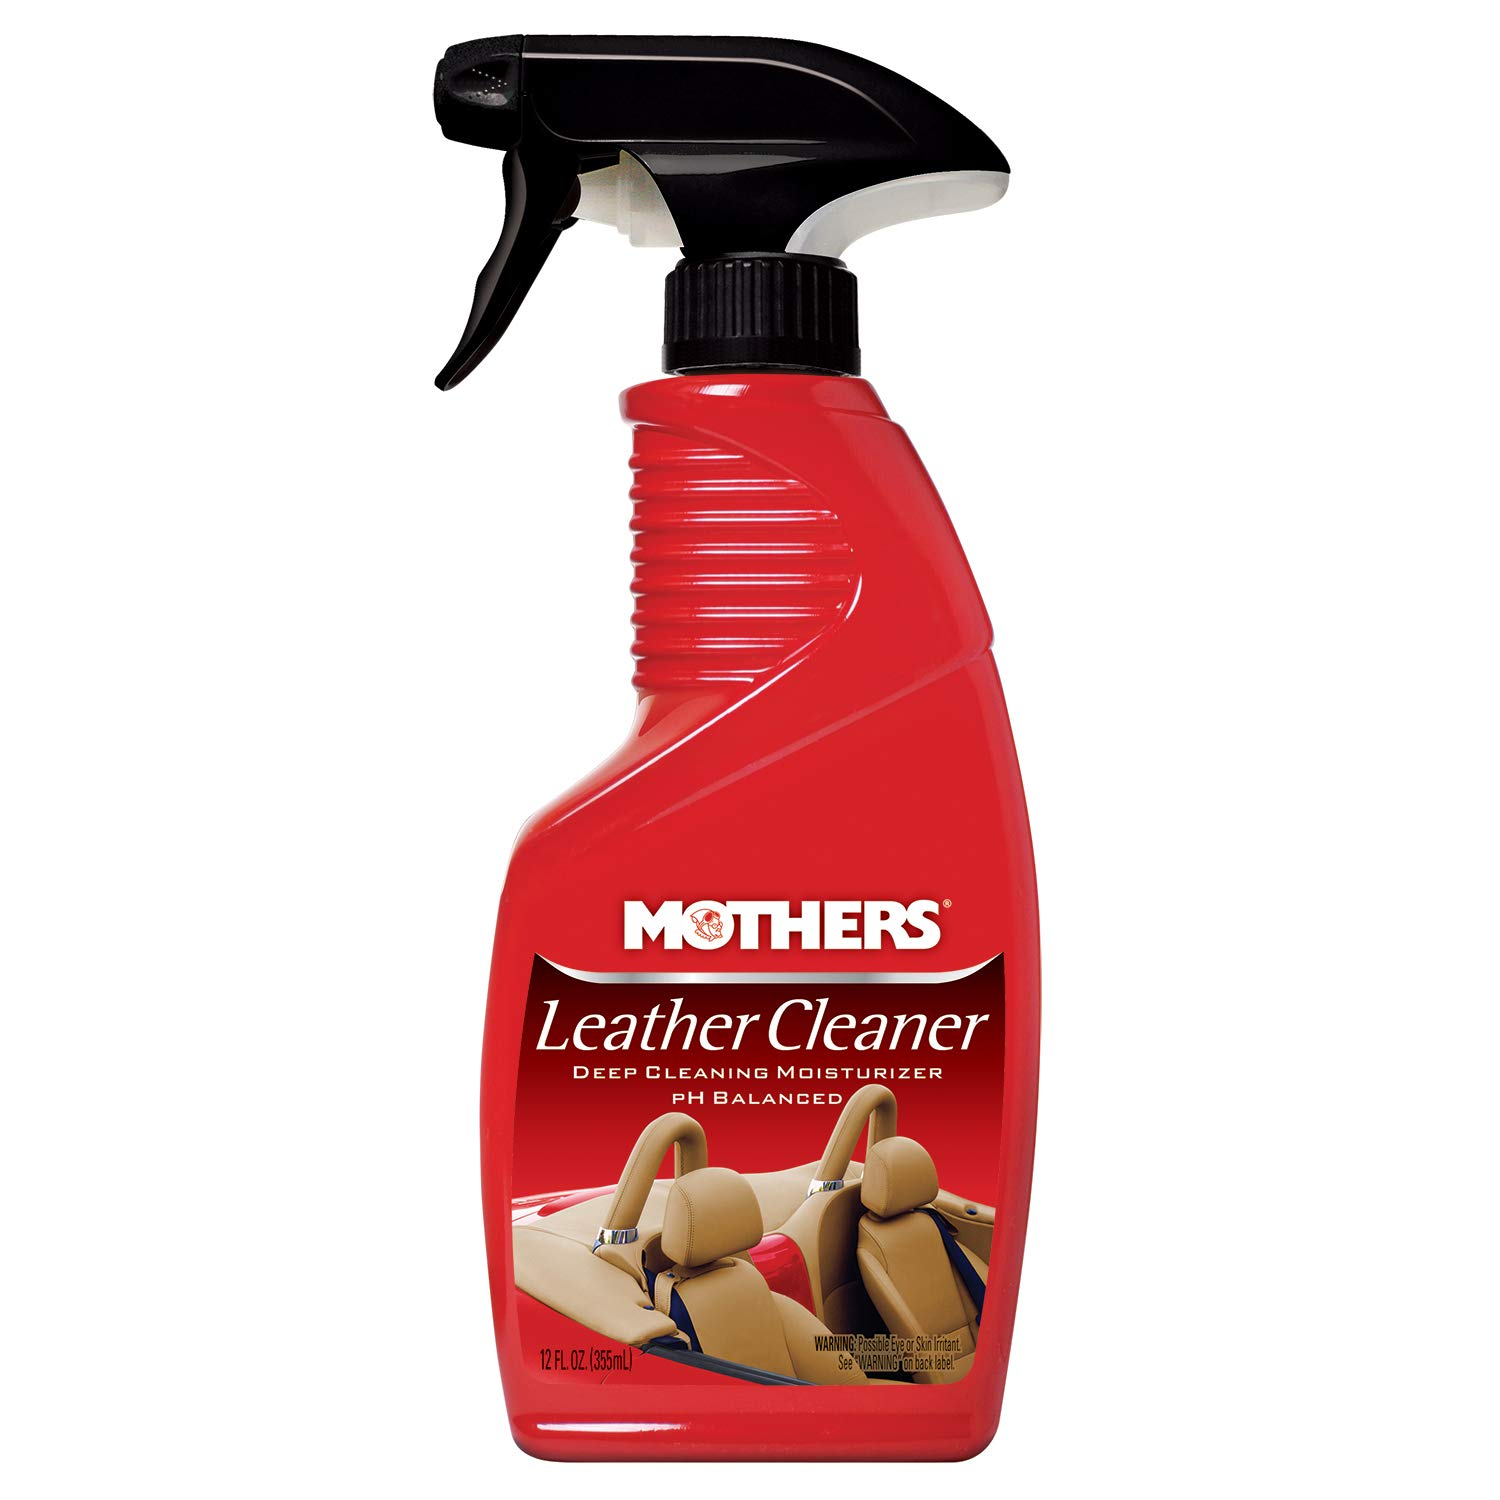 Mothers 06412-6 Leather Cleaner - 12 oz, (Pack of 6) by Mothers (Image #1)